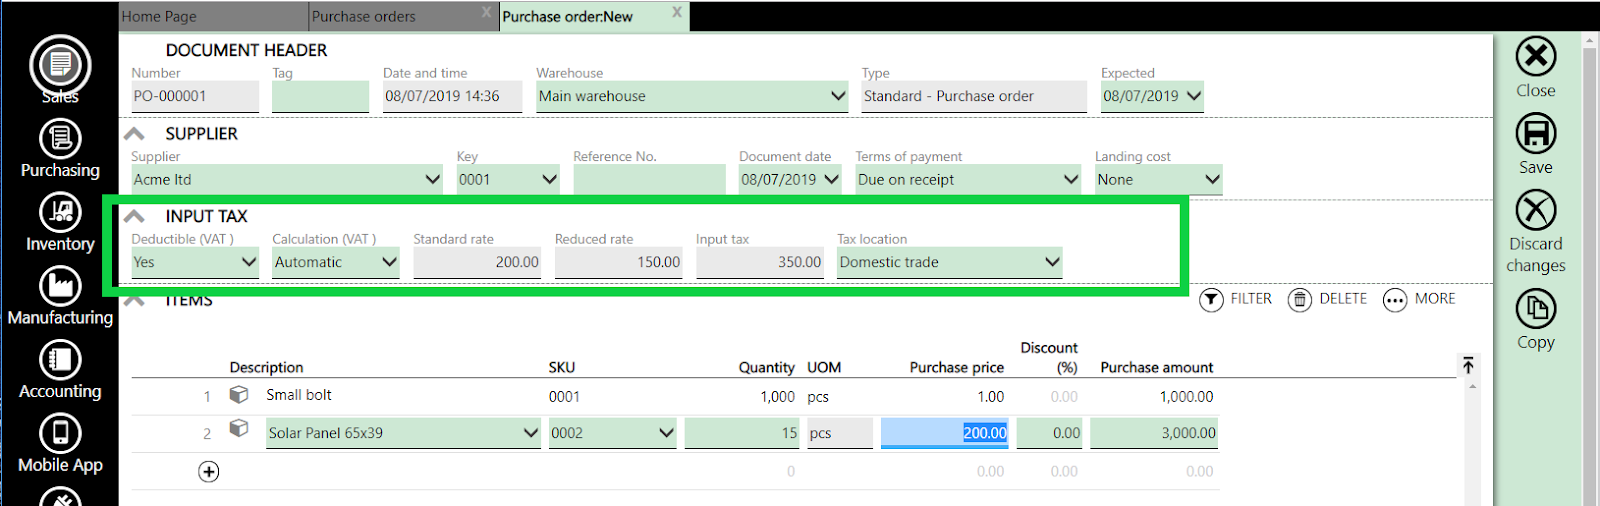 input tax purchase order